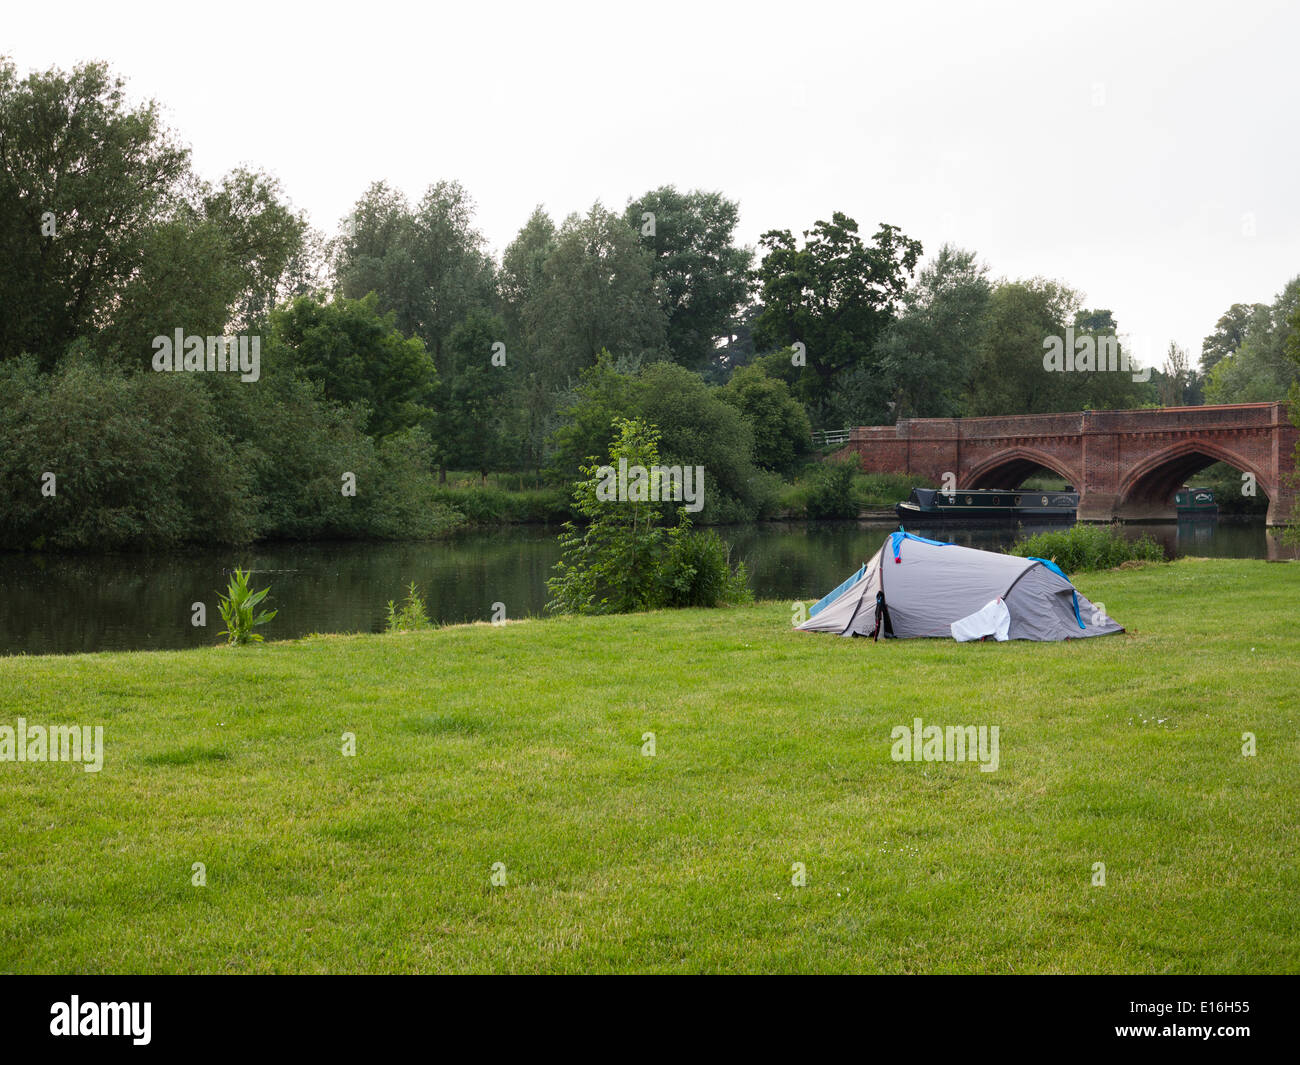 A tent pitched up in a field near Clifton H&den bridge on the bank of the river Thames in Oxfordshire & A tent pitched up in a field near Clifton Hampden bridge on the ...